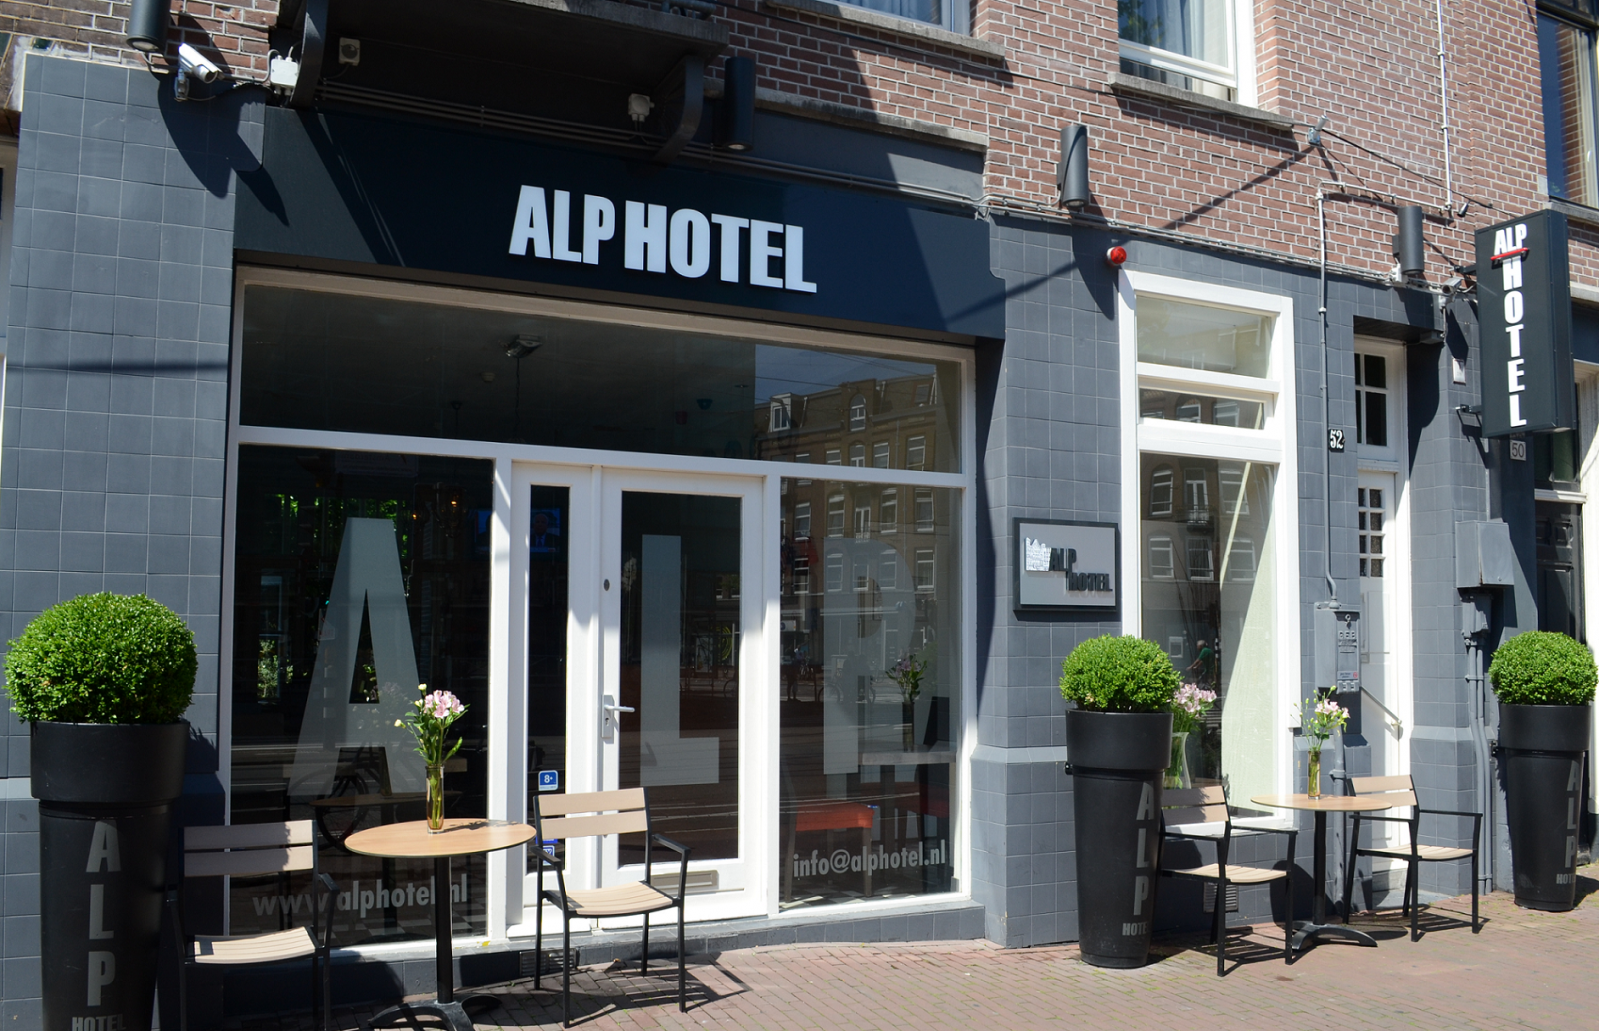 alp hotel amsterdam. Black Bedroom Furniture Sets. Home Design Ideas